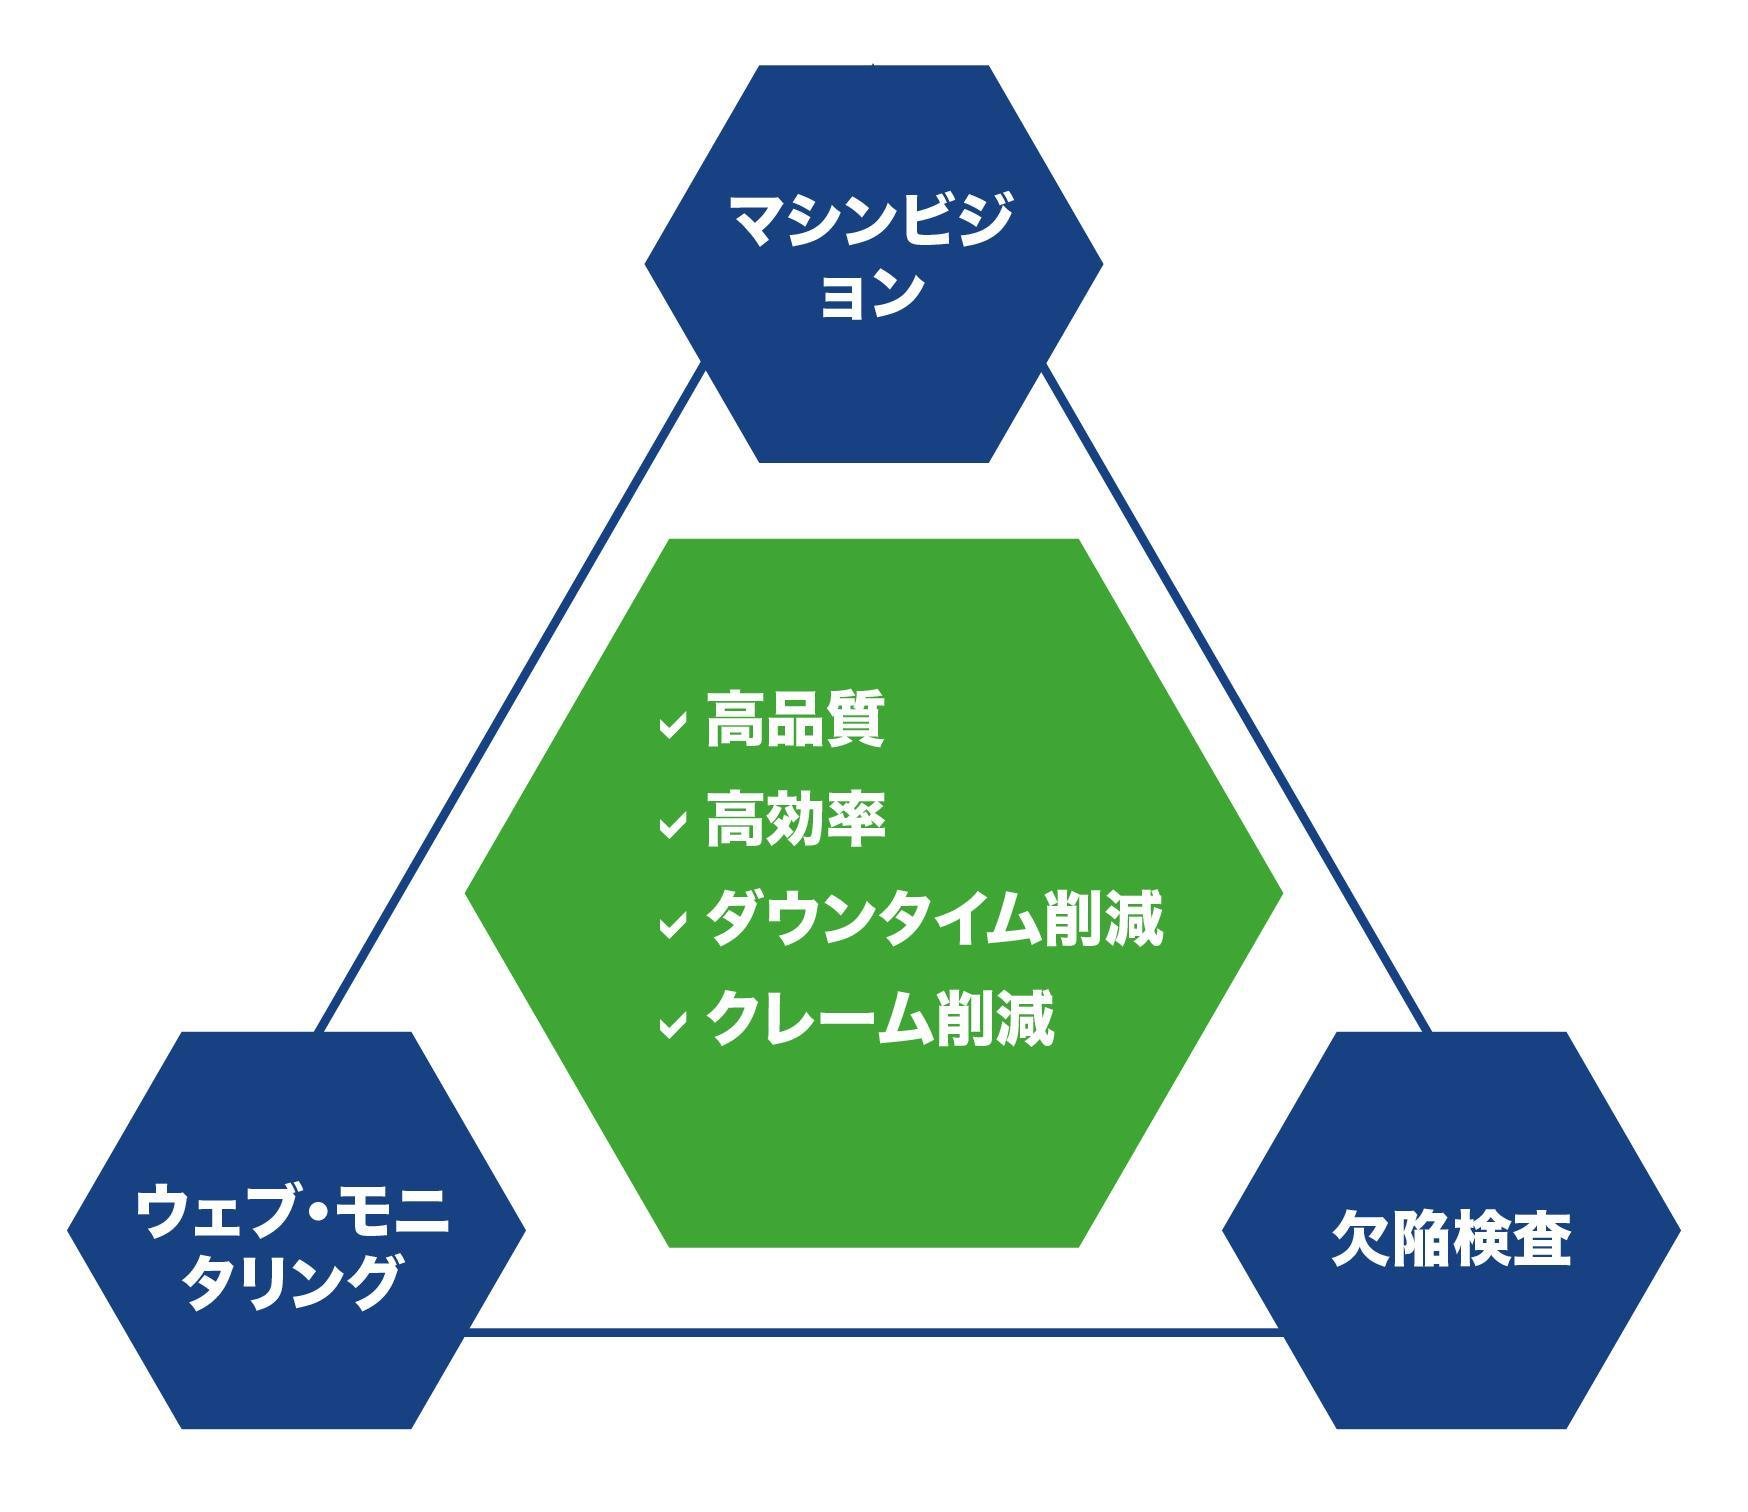 Machine Vision Application Procemex in Japanese